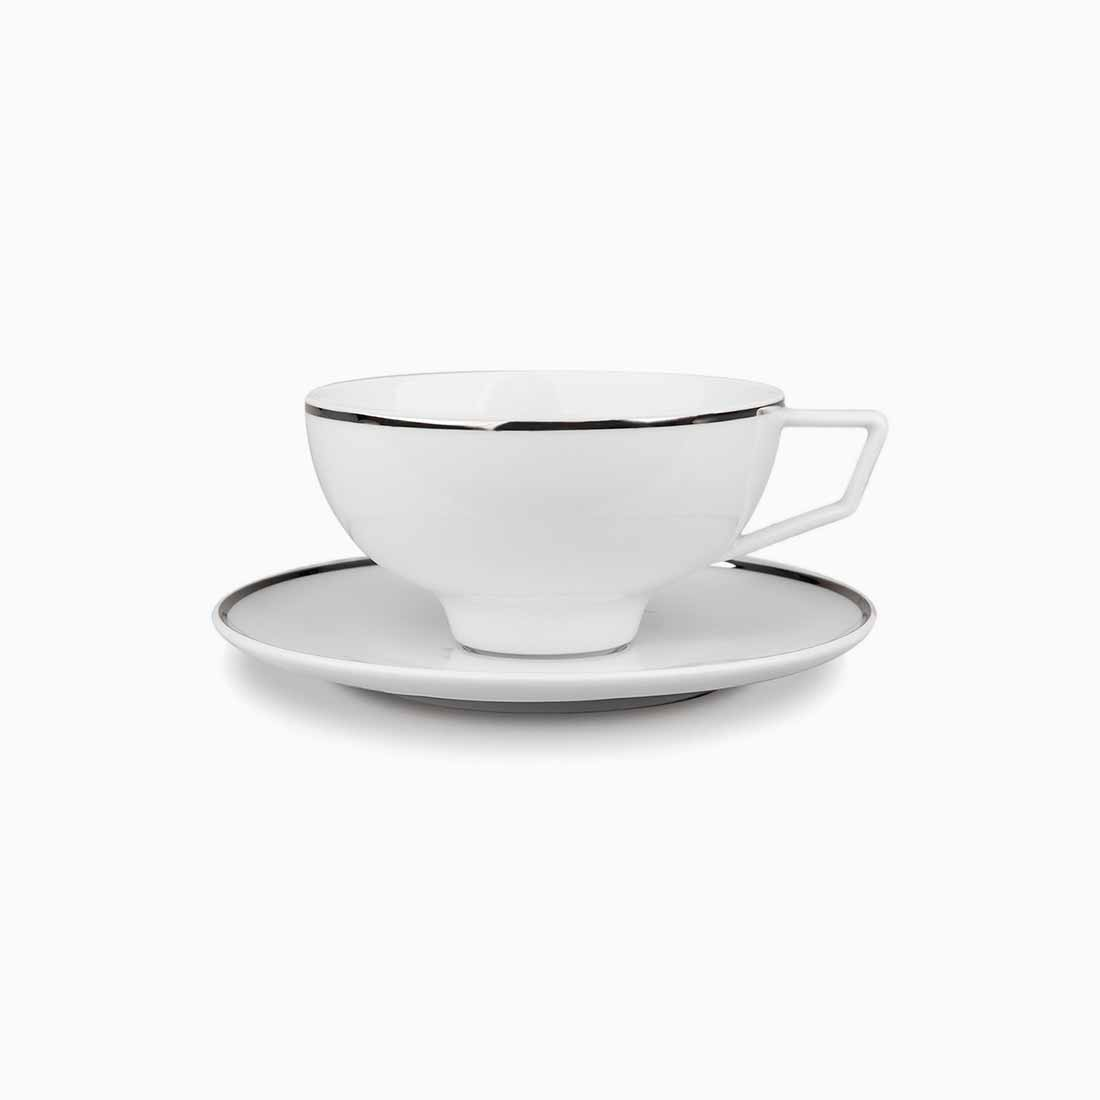 Pomona Teacup and Saucer White with platinum line by Bodo Sperlein